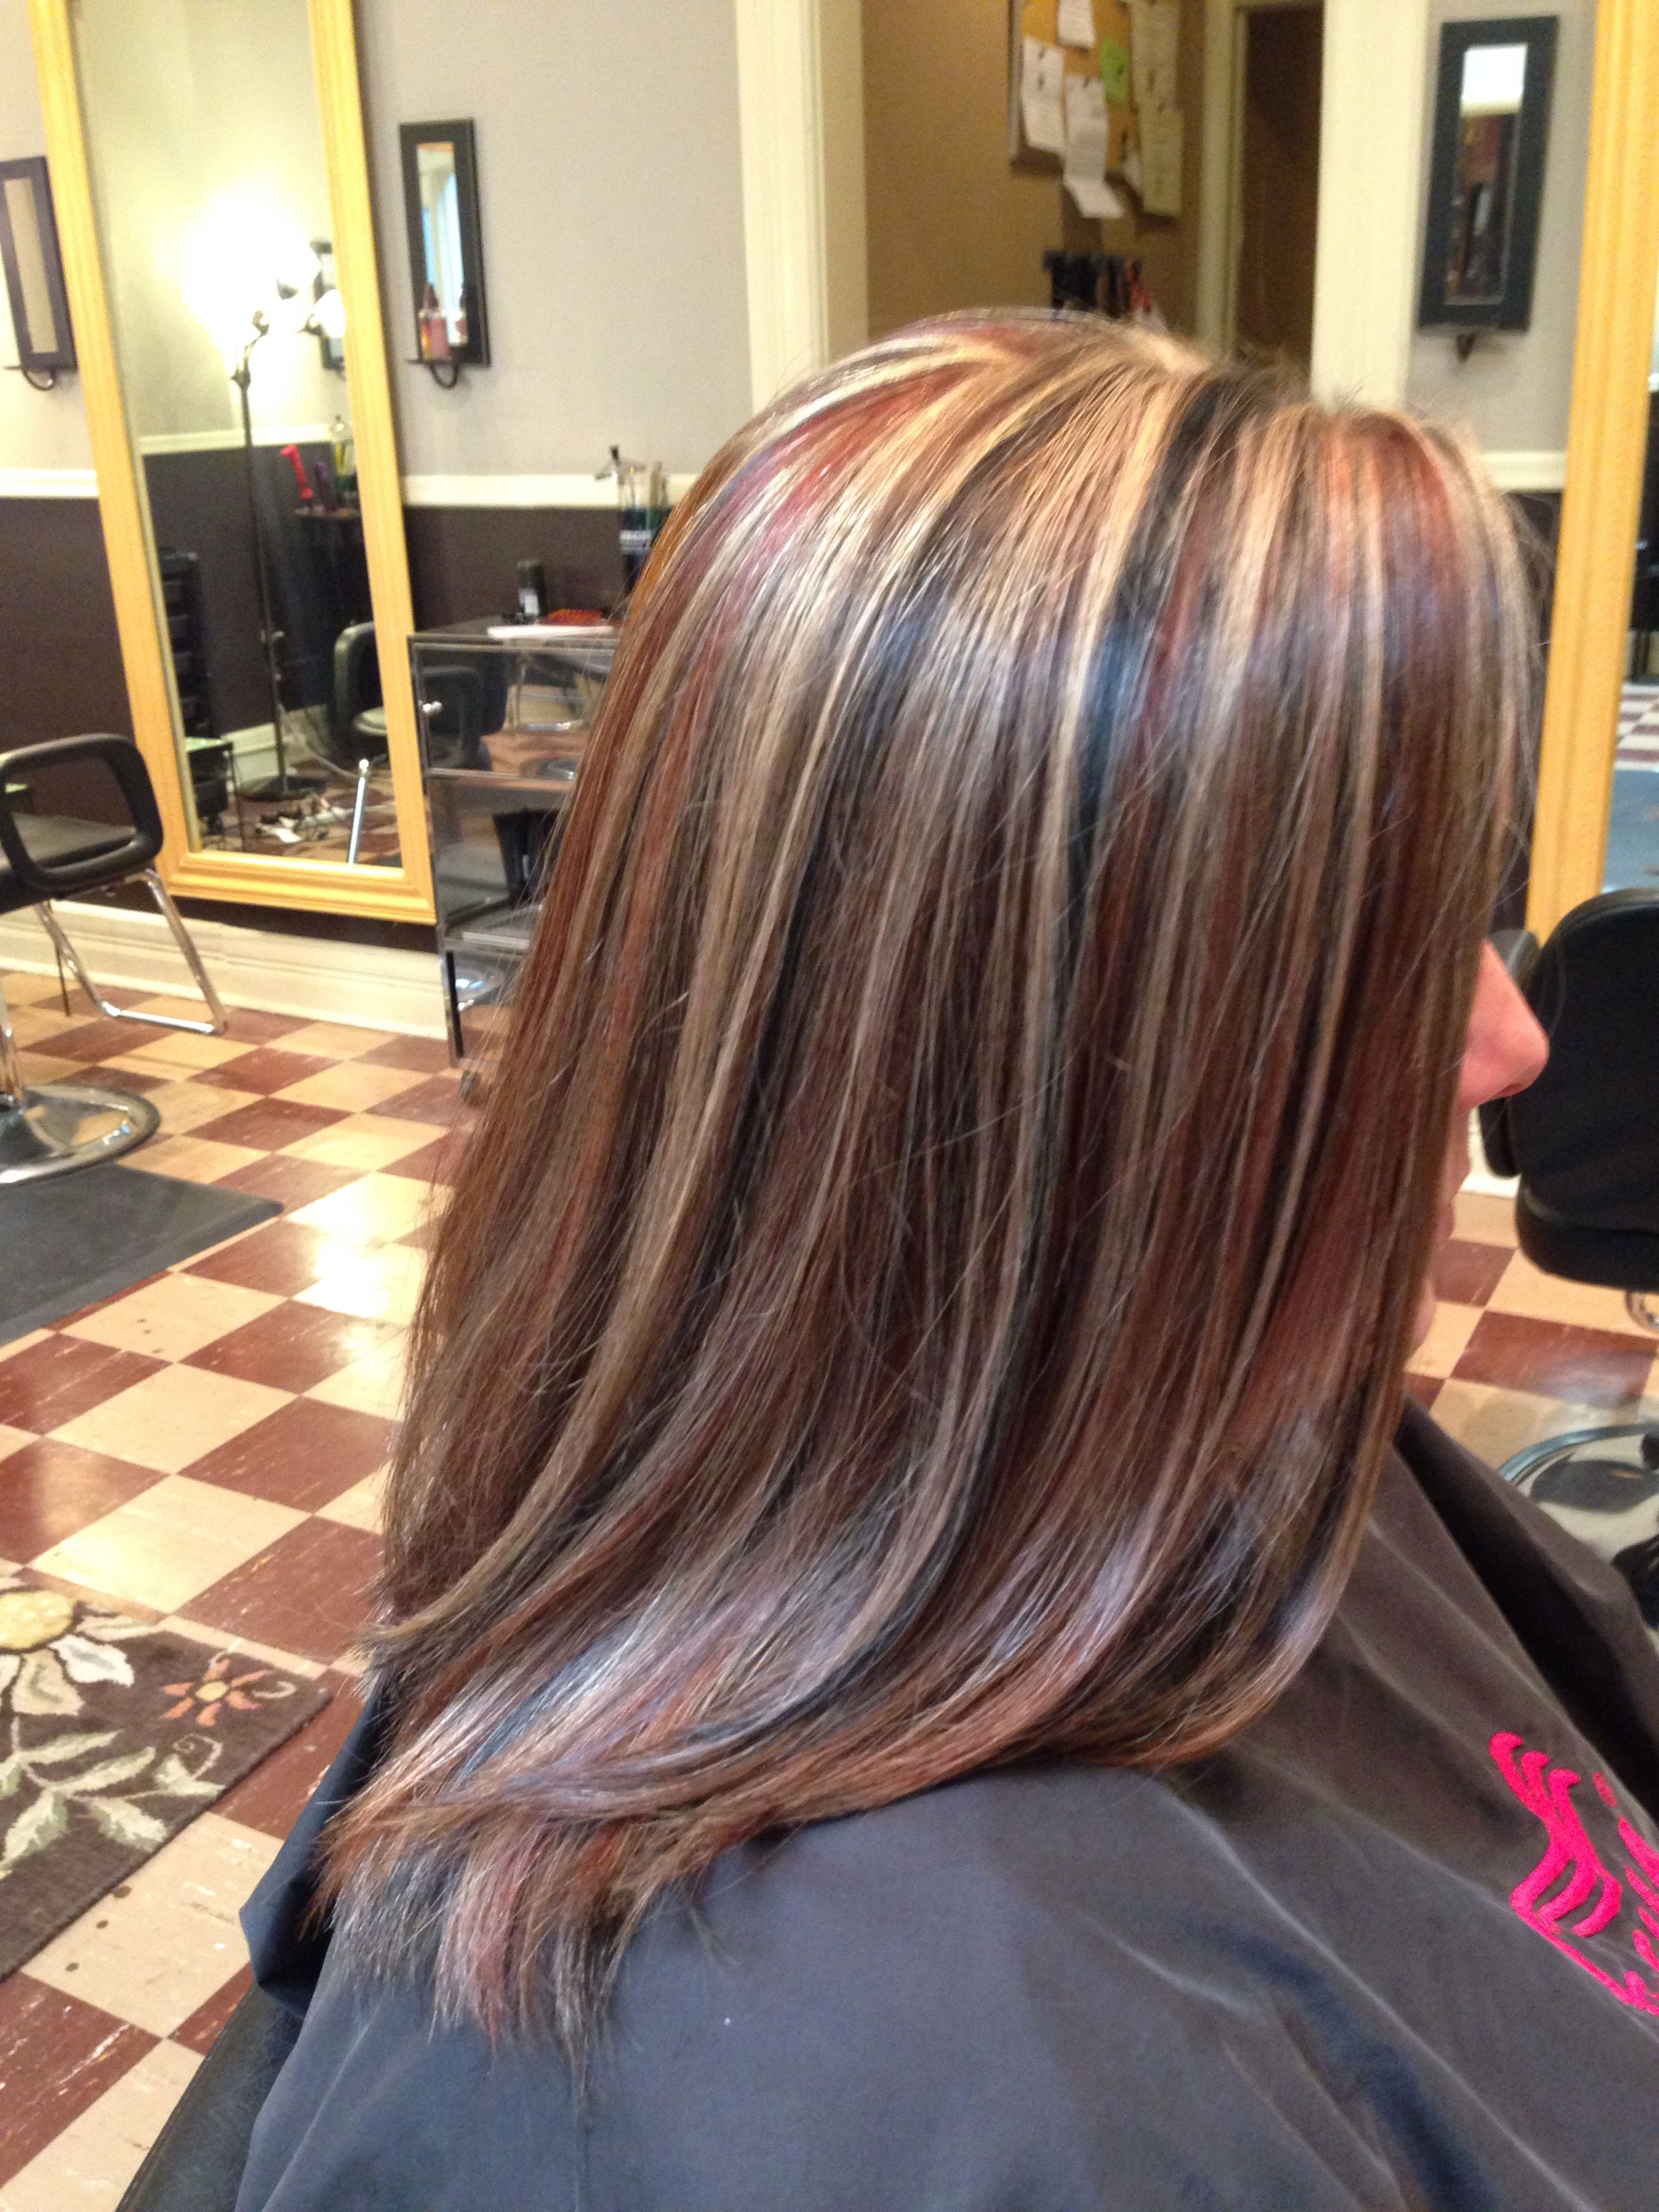 Highlight Lowlight Dimensional With Blonde Black And Red Inspired By Kelly Clarkson Hair Styles Hair Highlights Blonde Hair Color